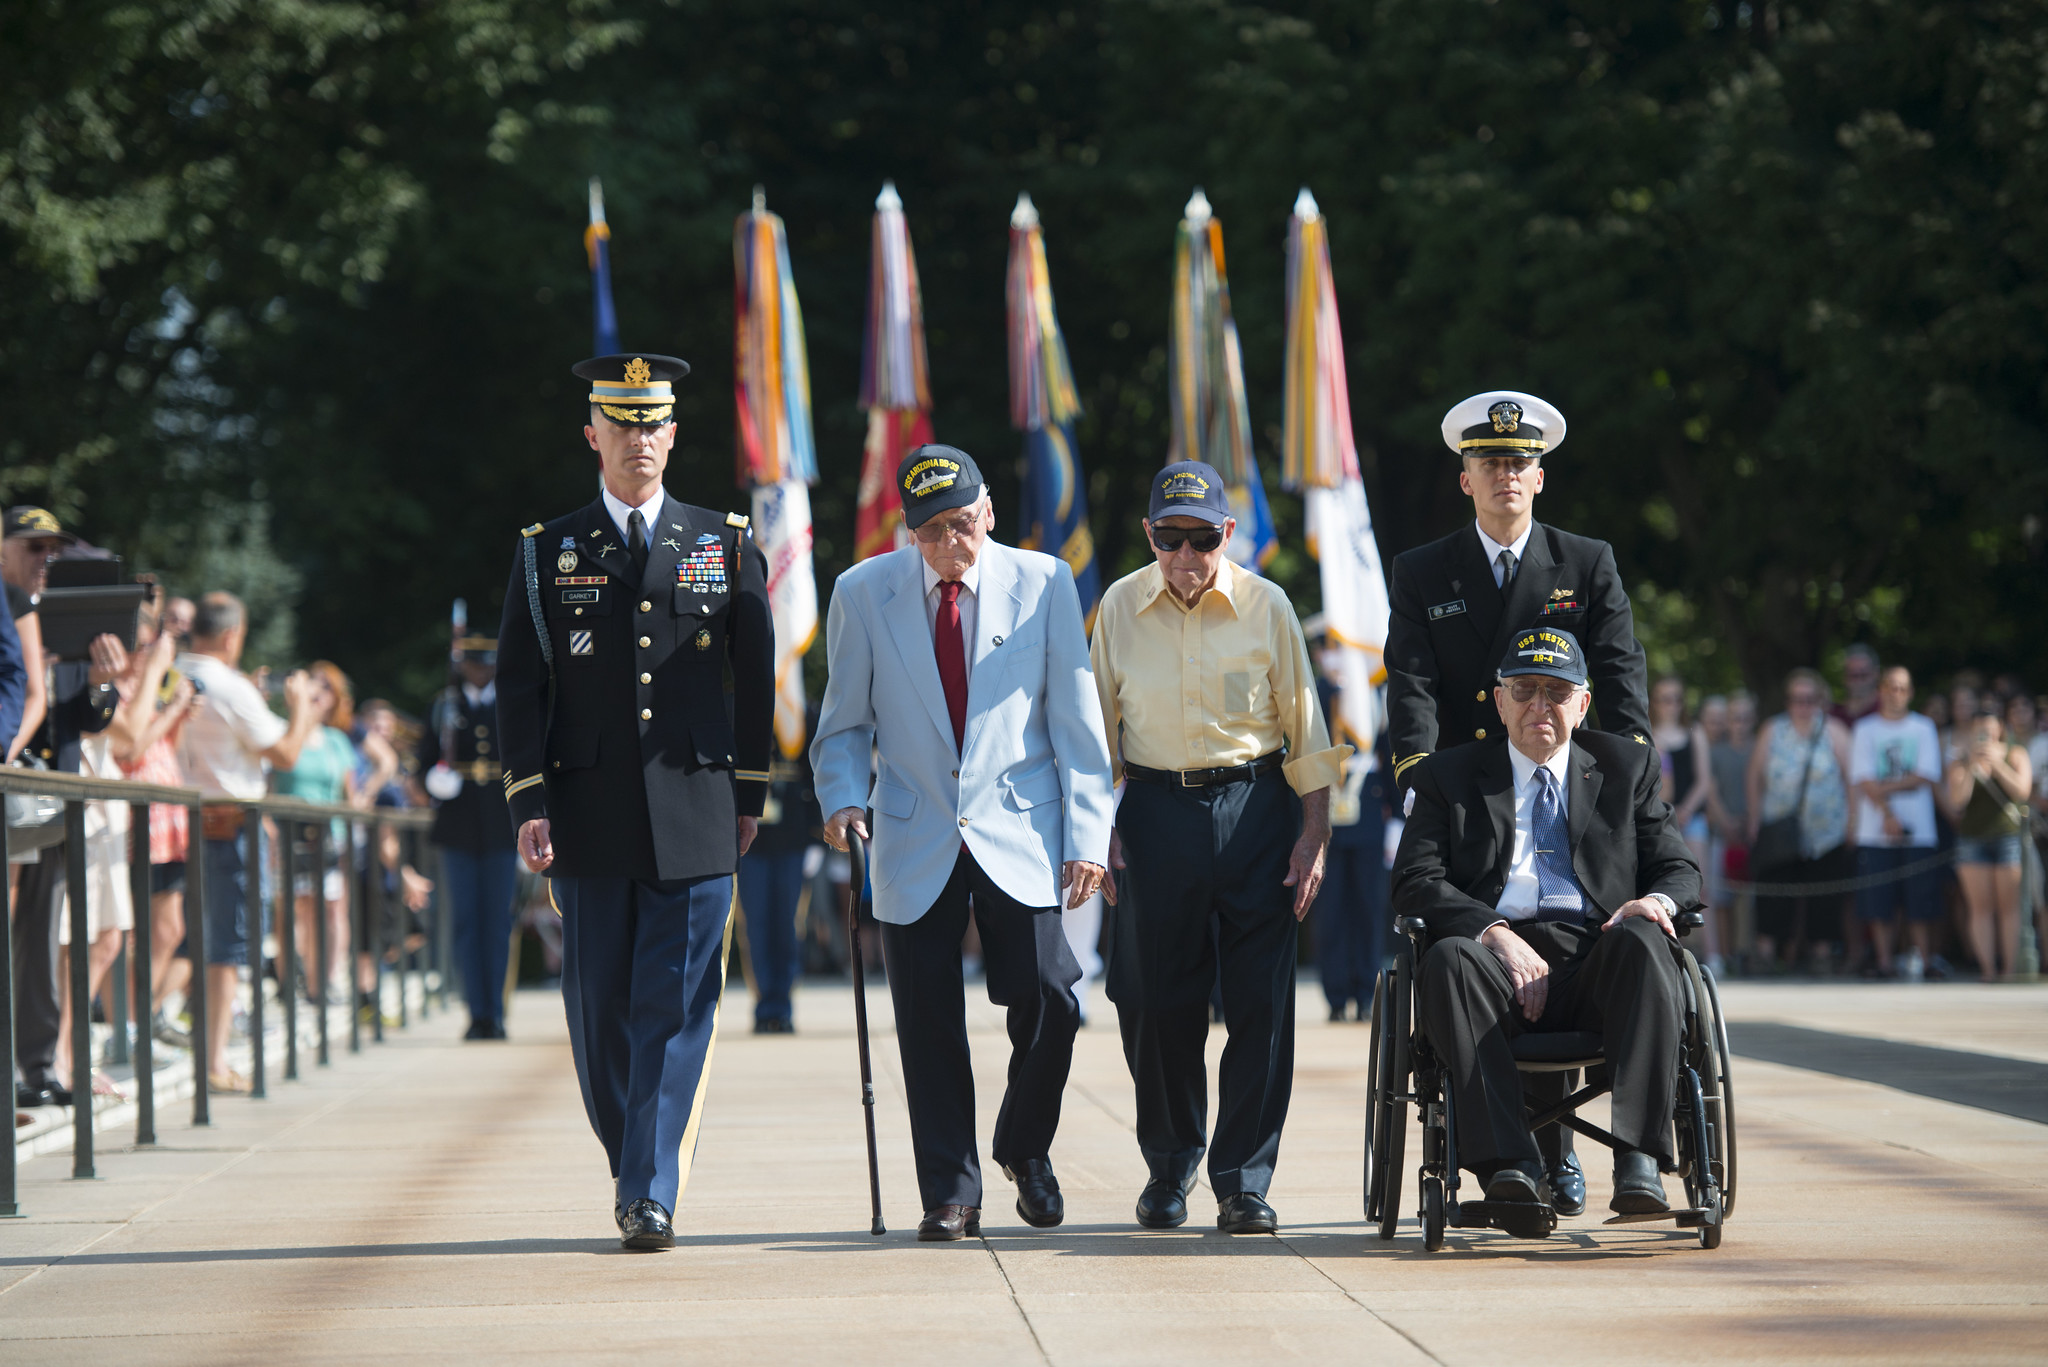 USS Arizona Survivors Participate in an Armed Forces Wreath Laying Ceremony at the Tomb of the Unknown Soldier